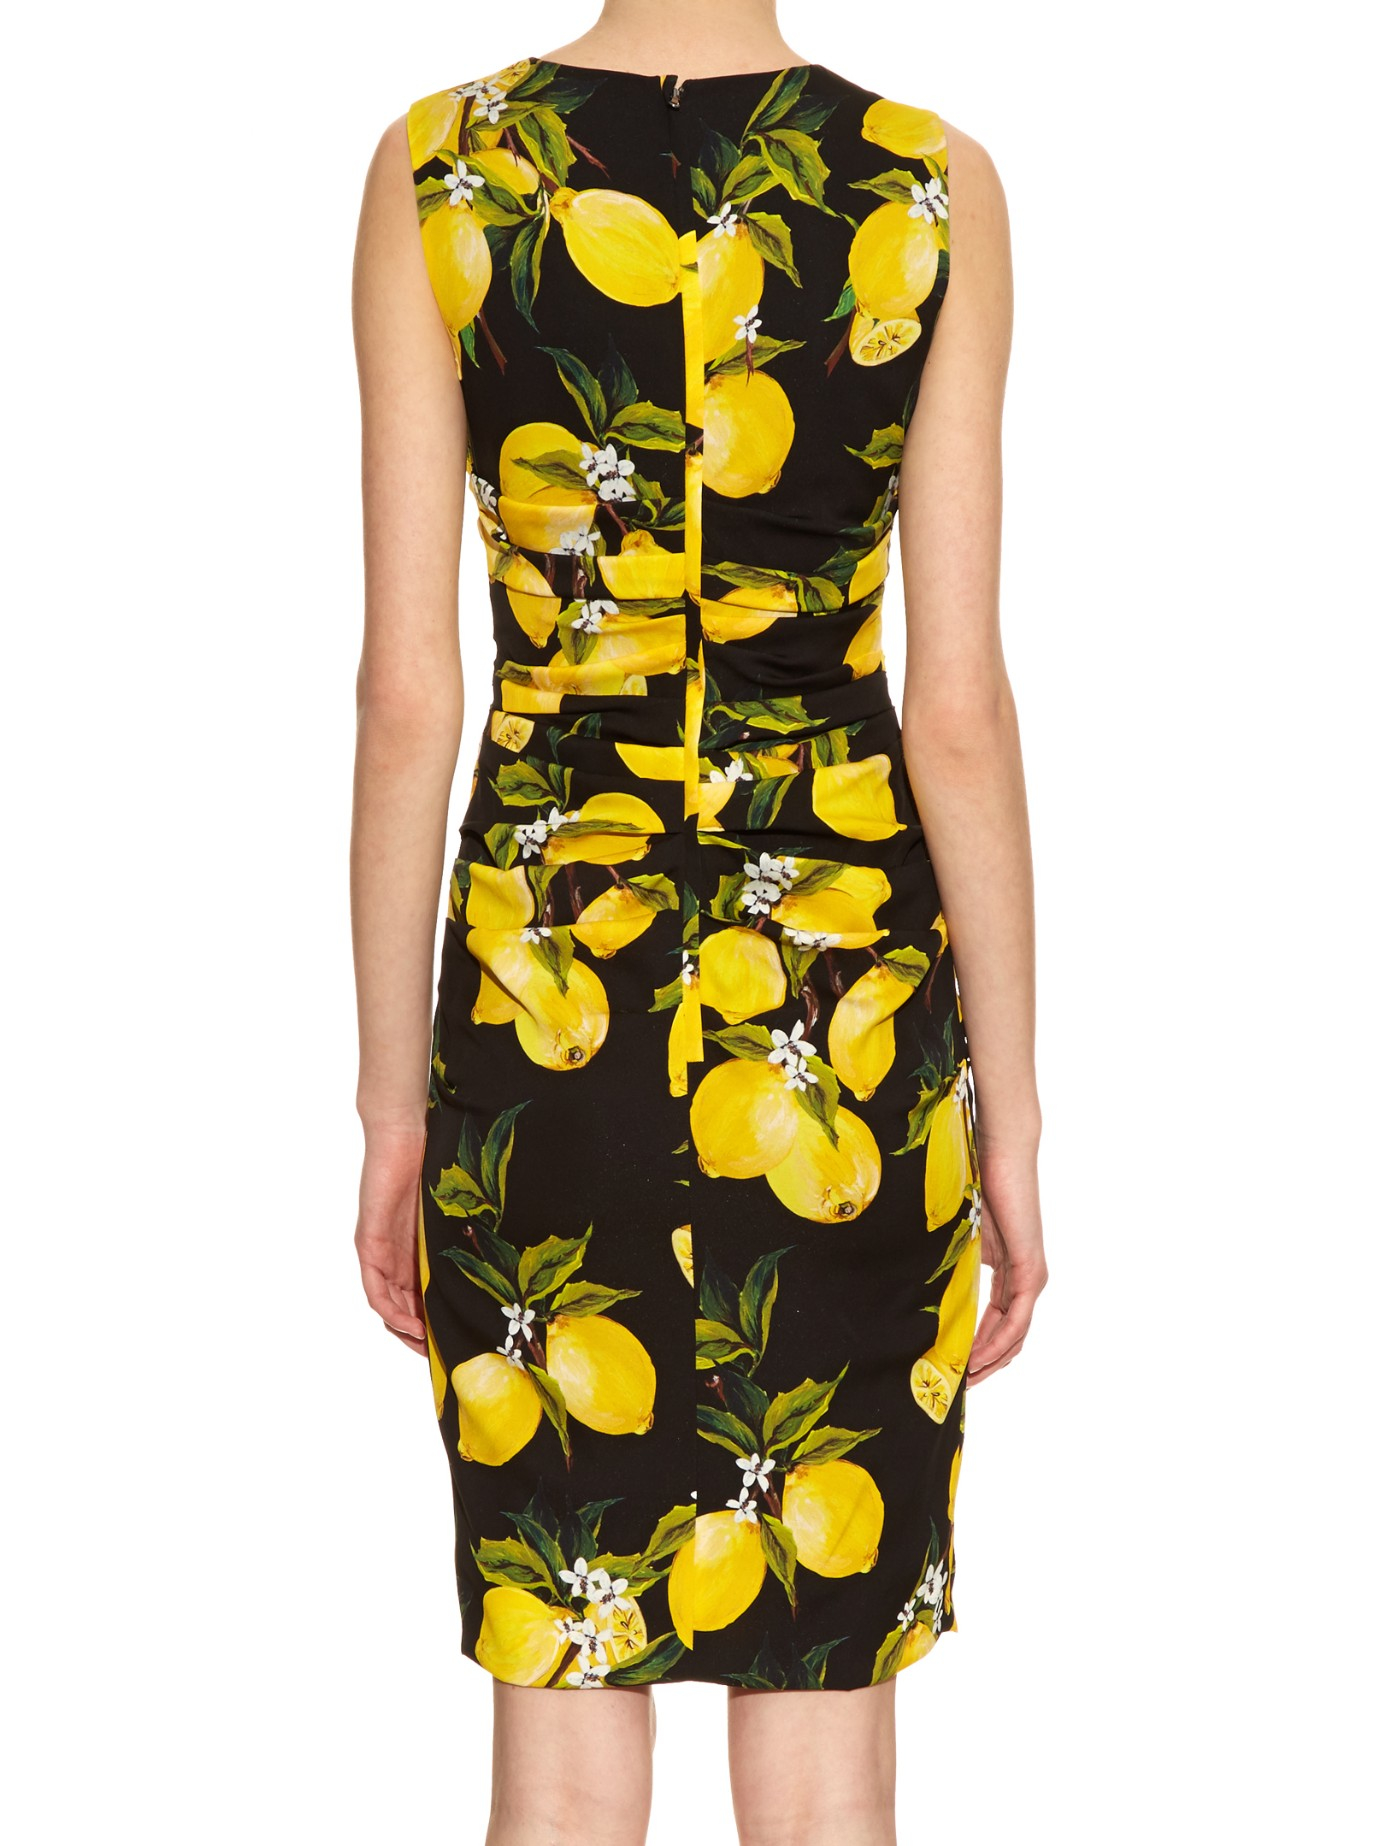 Lyst - Dolce   Gabbana Lemon-print Ruched Silk Dress in Black 4a5f25351da30